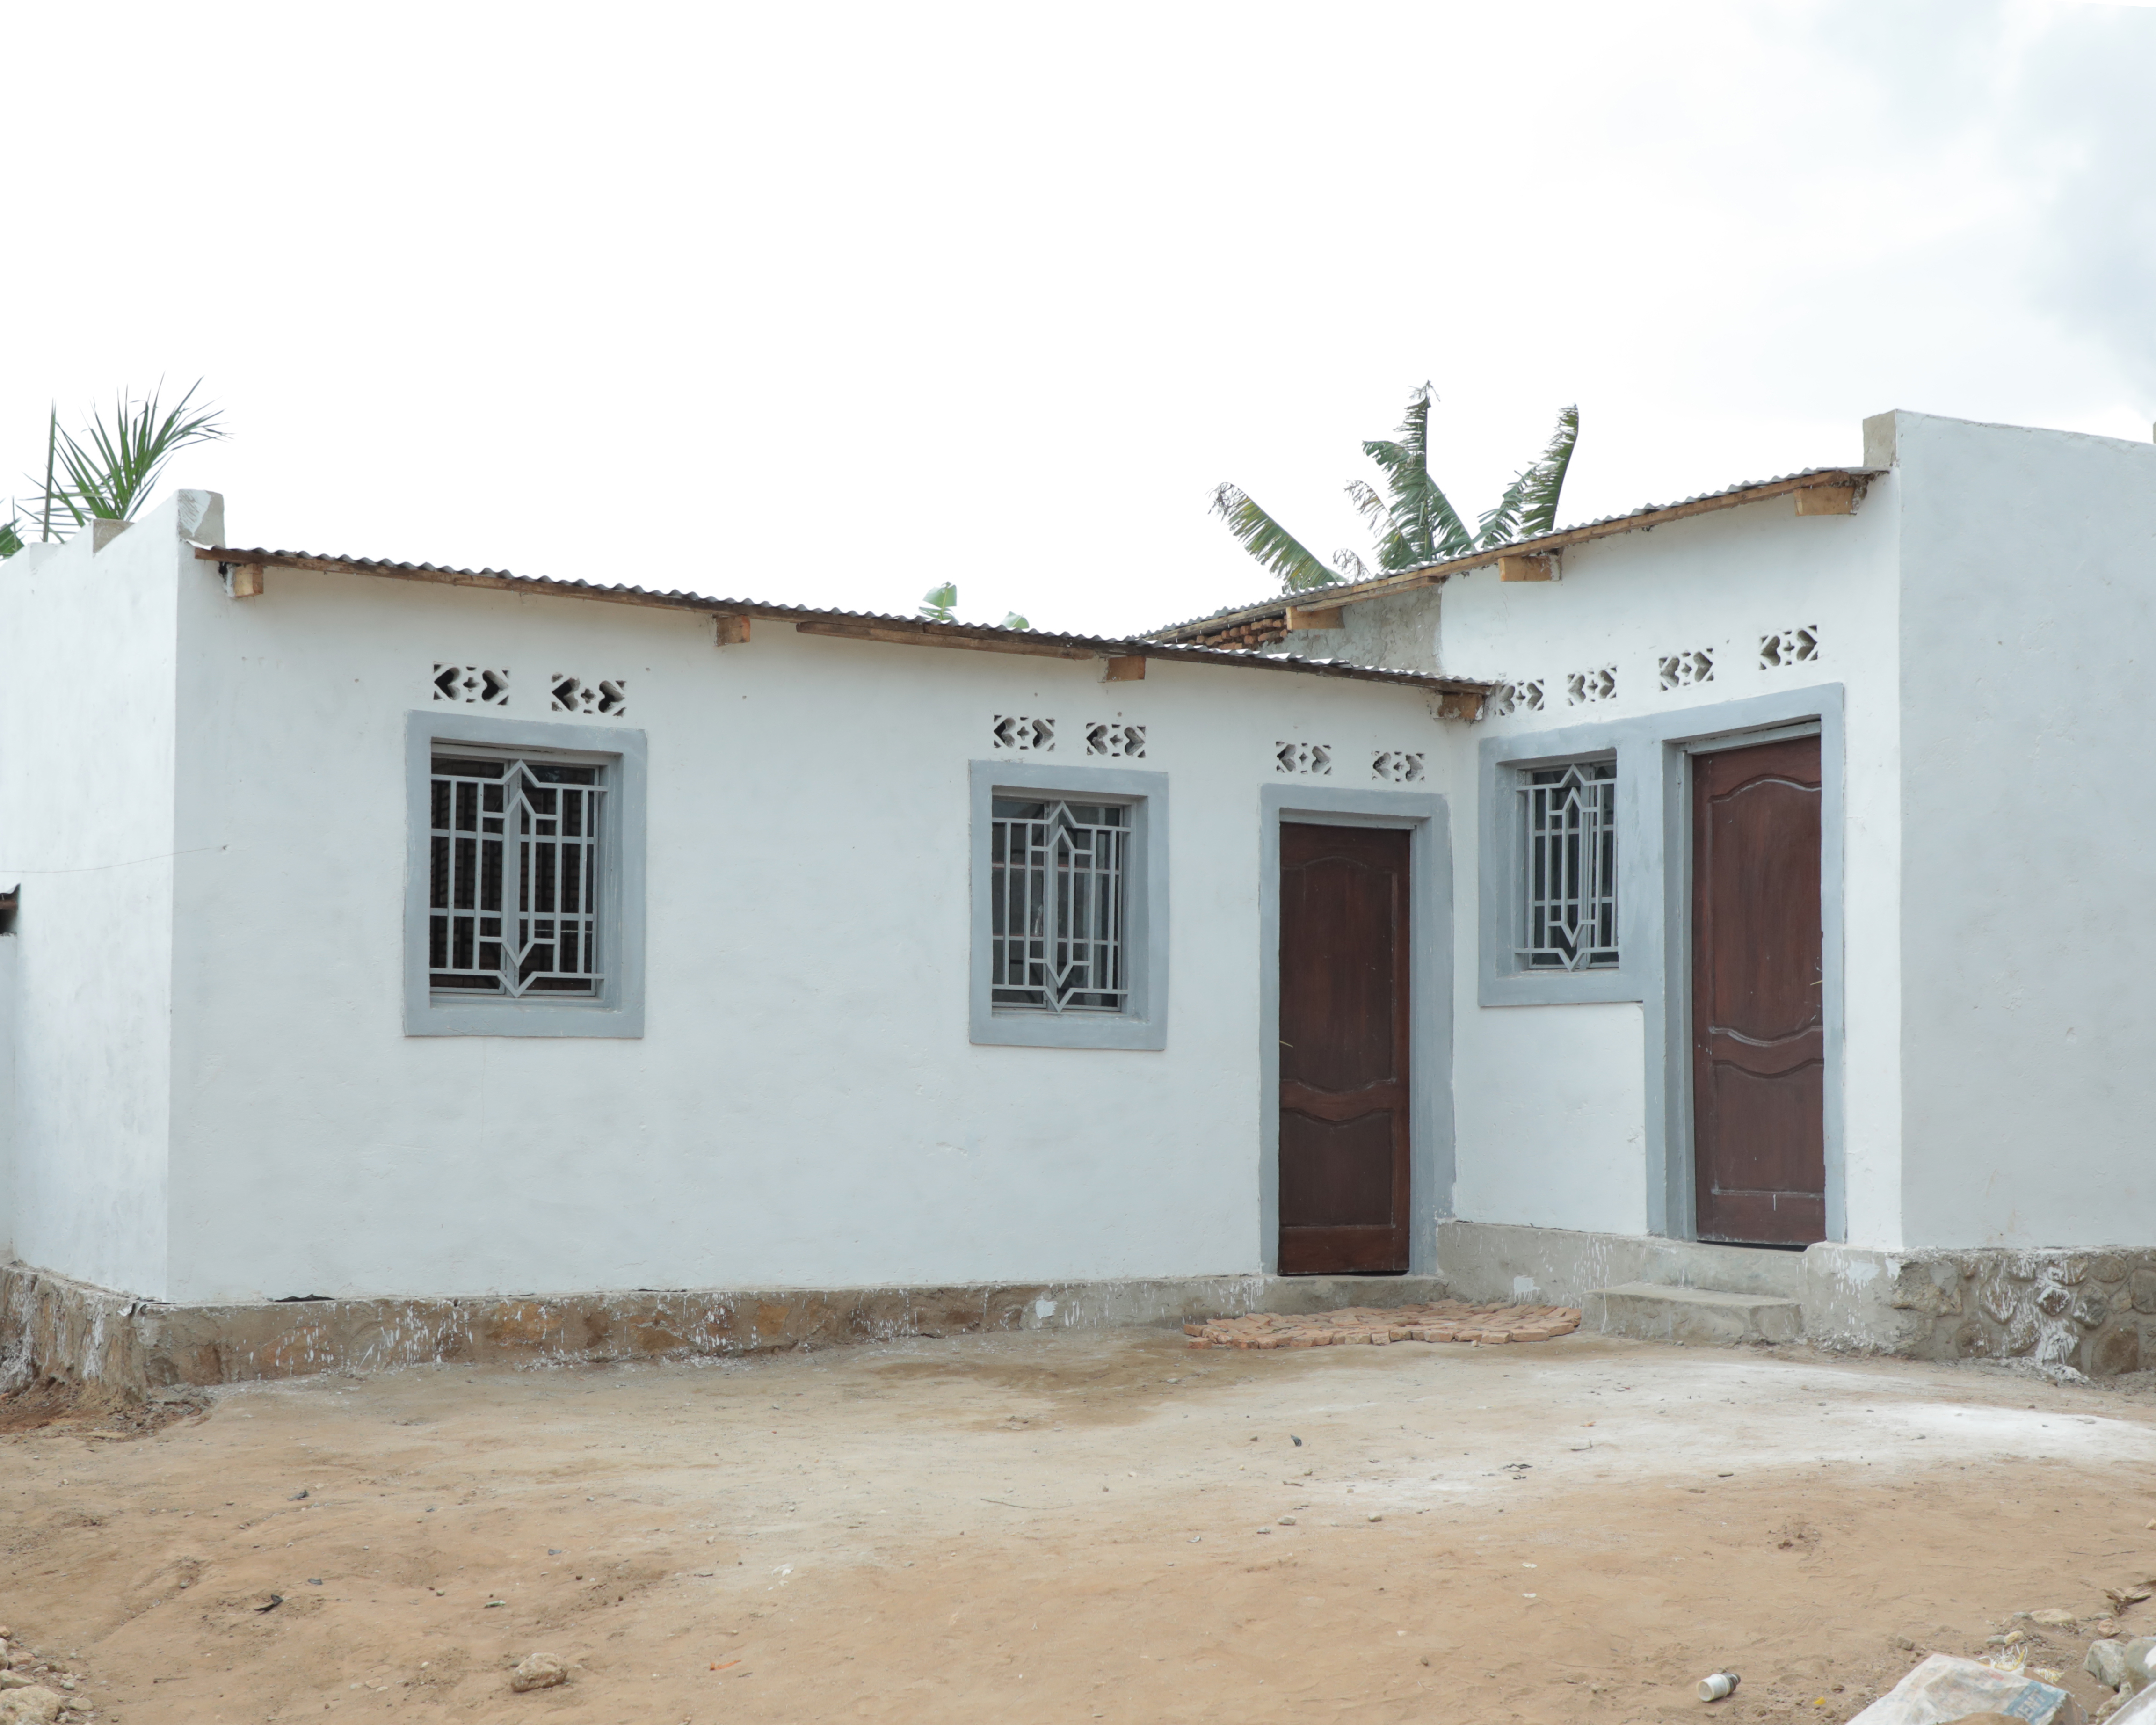 A newly built home in Burundi